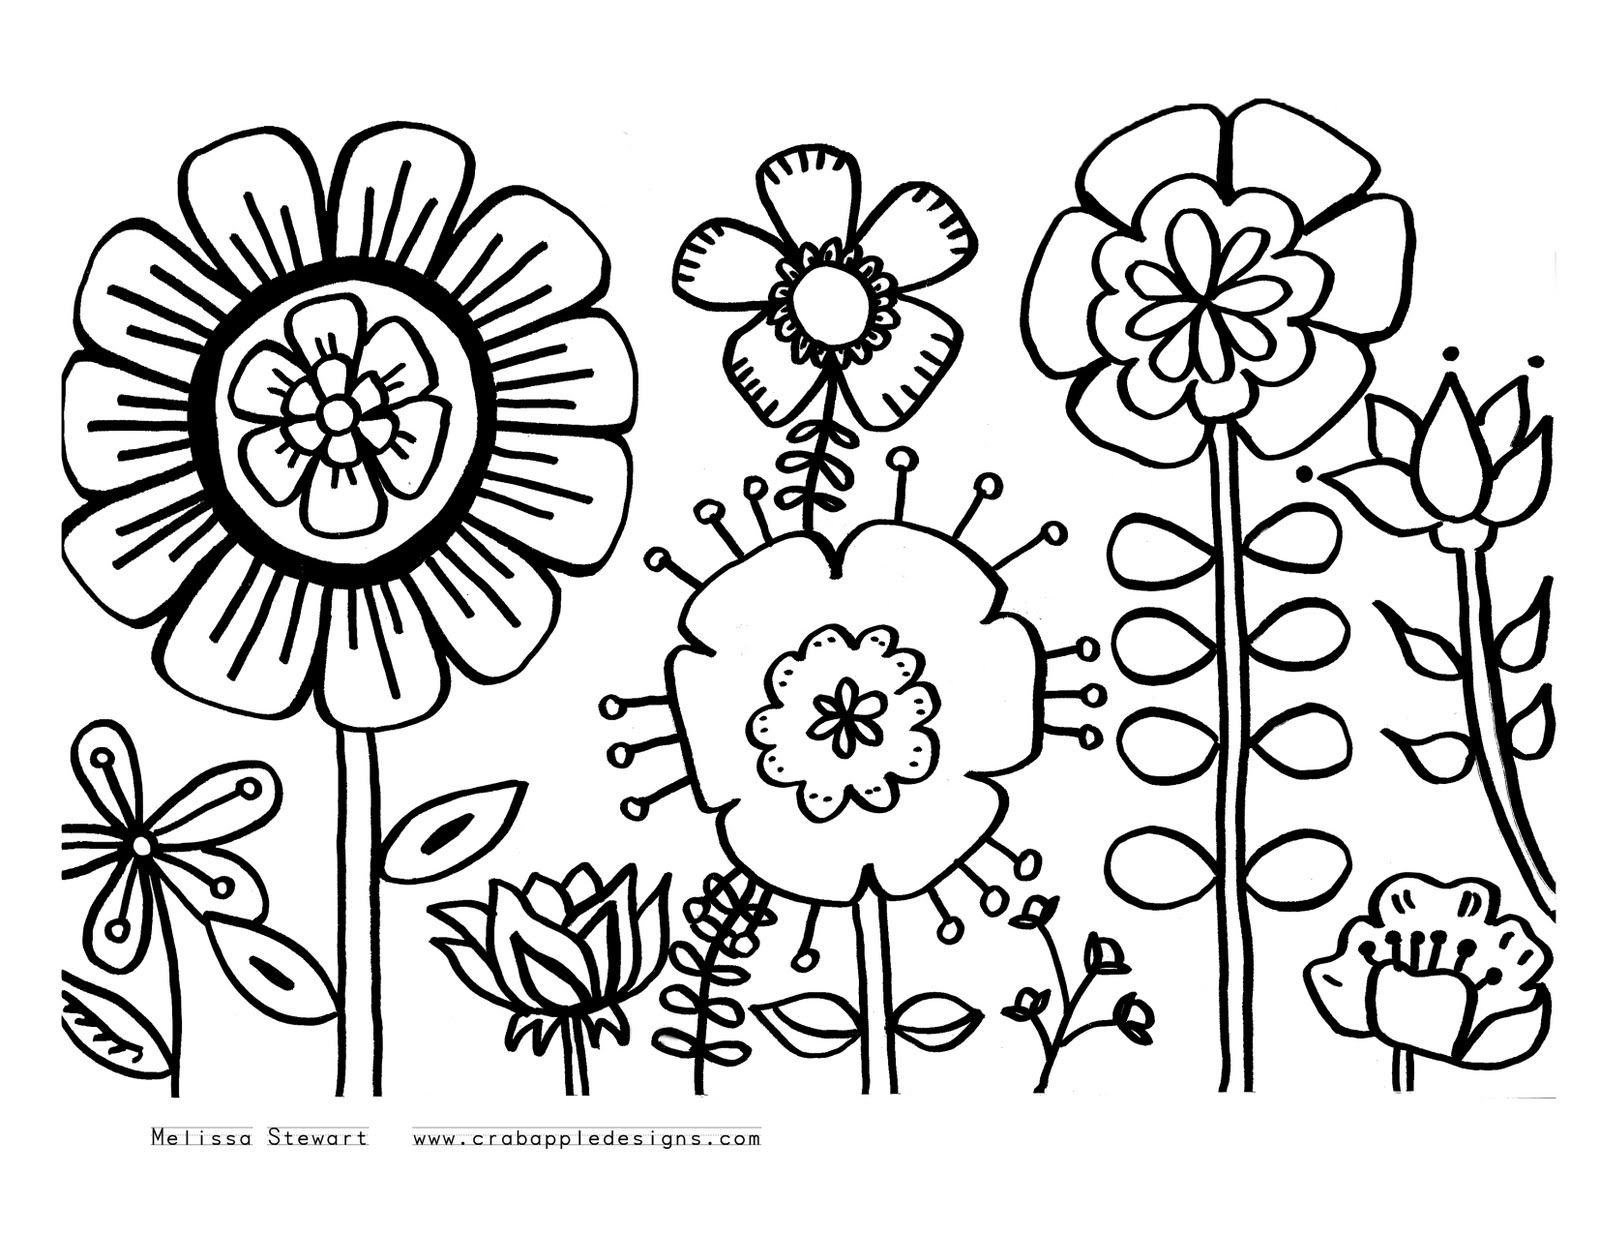 Flowers Printable Flower Coloring Pages Summer Coloring Pages Flower Coloring Sheets